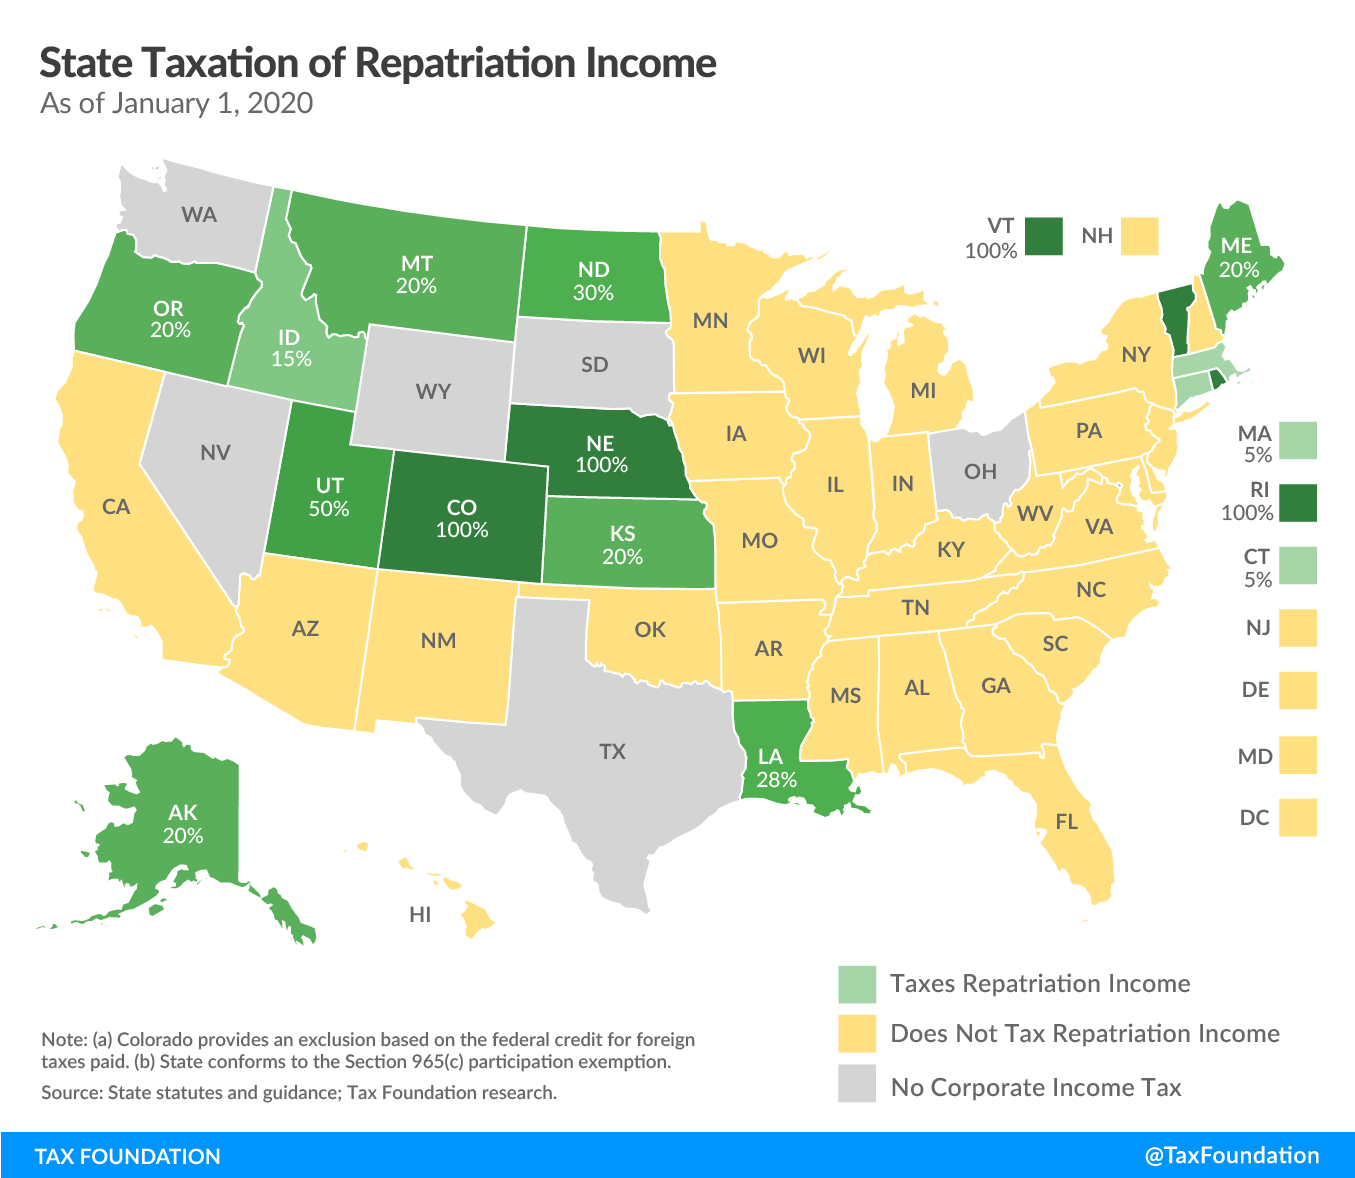 State taxation of repatriation income